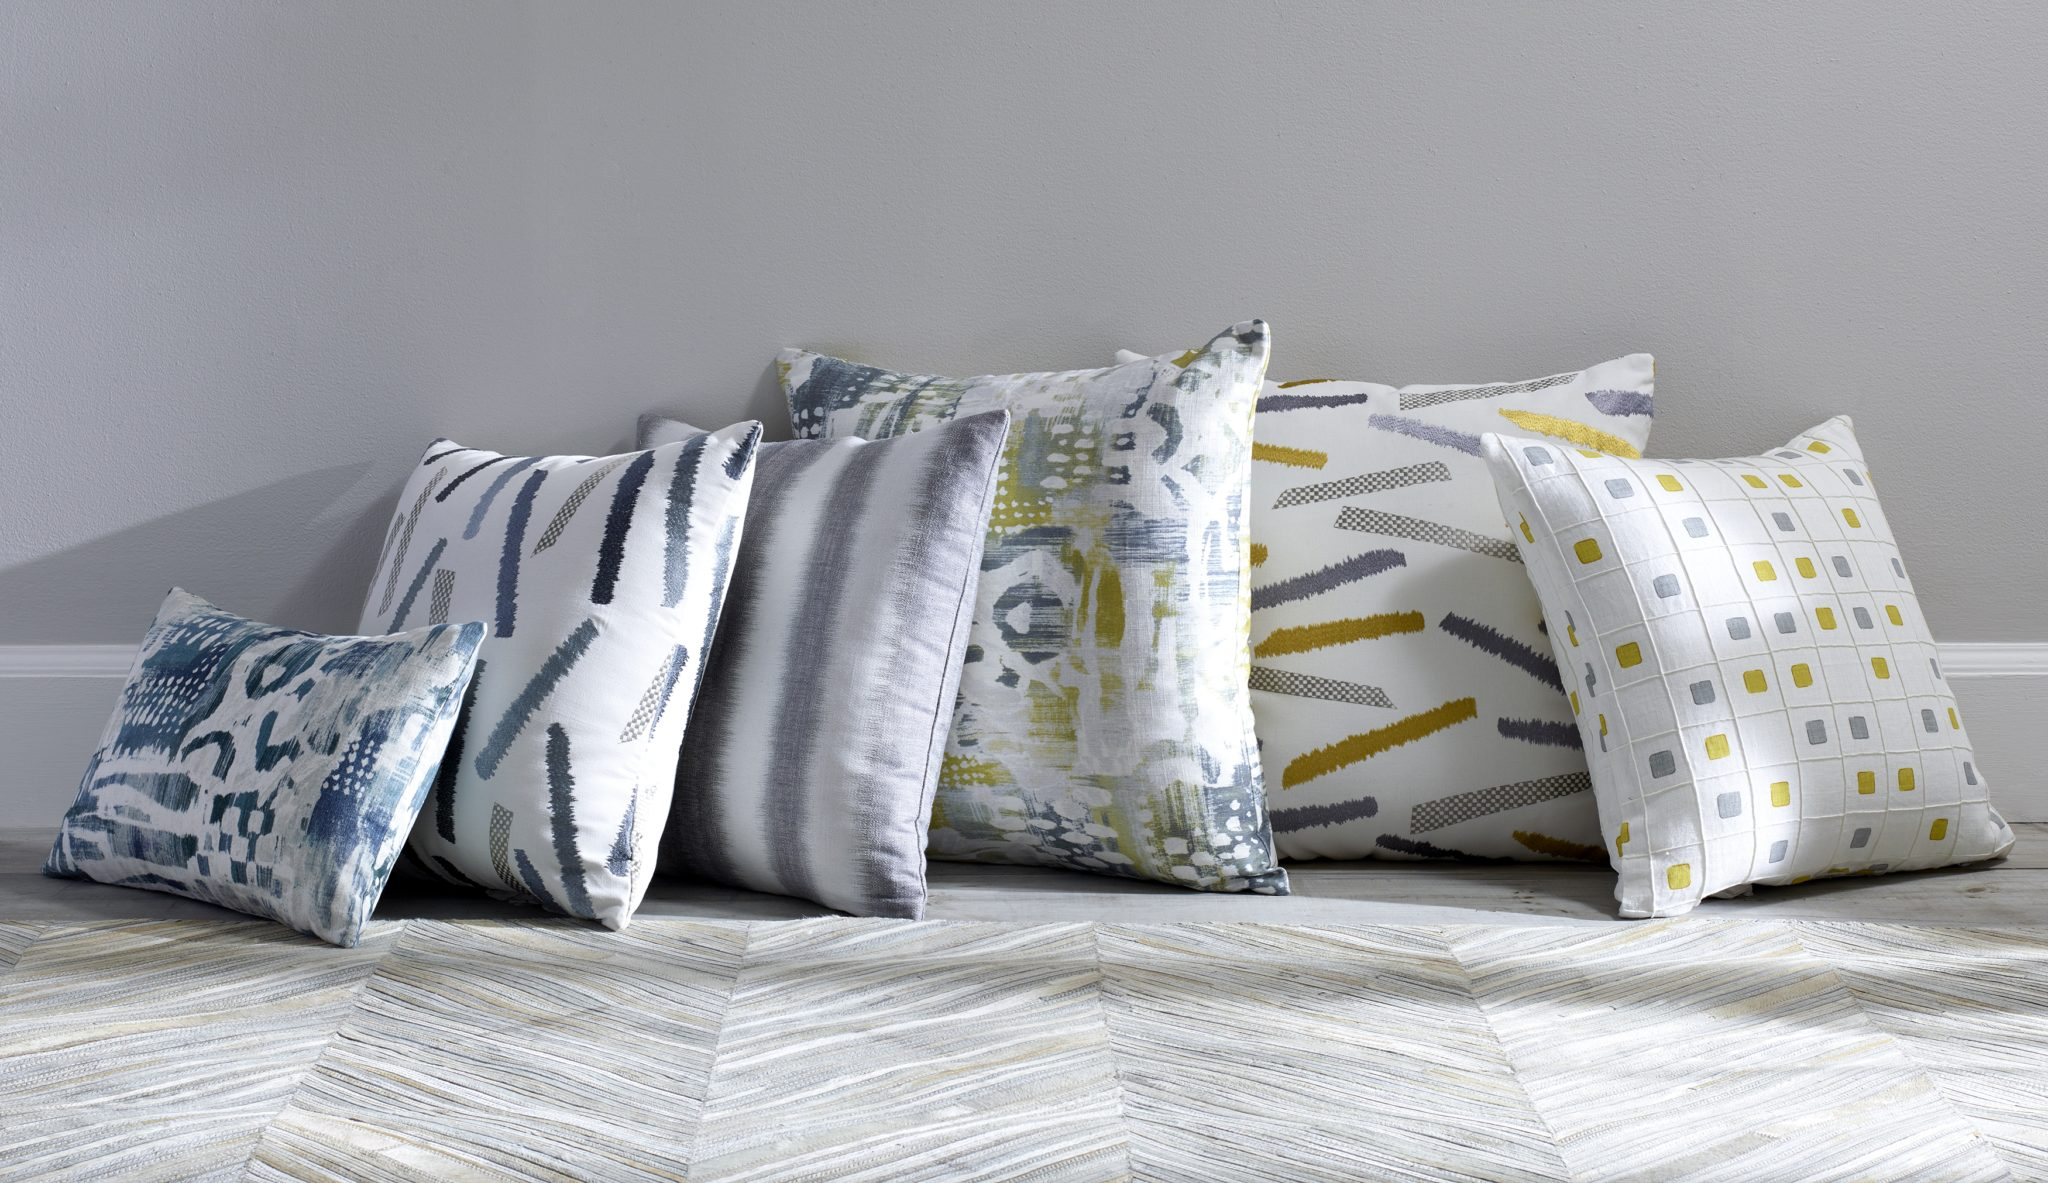 Shown here is a variety of pillows covered in the new Jeffrey Alan Marks fabrics. From left to right: Surfwood in Ocean; Tramonto in Ocean; Windswell in Pewter; Surfwood in Citrine; Tramonto in Citrine; Gridwork in Citrine.